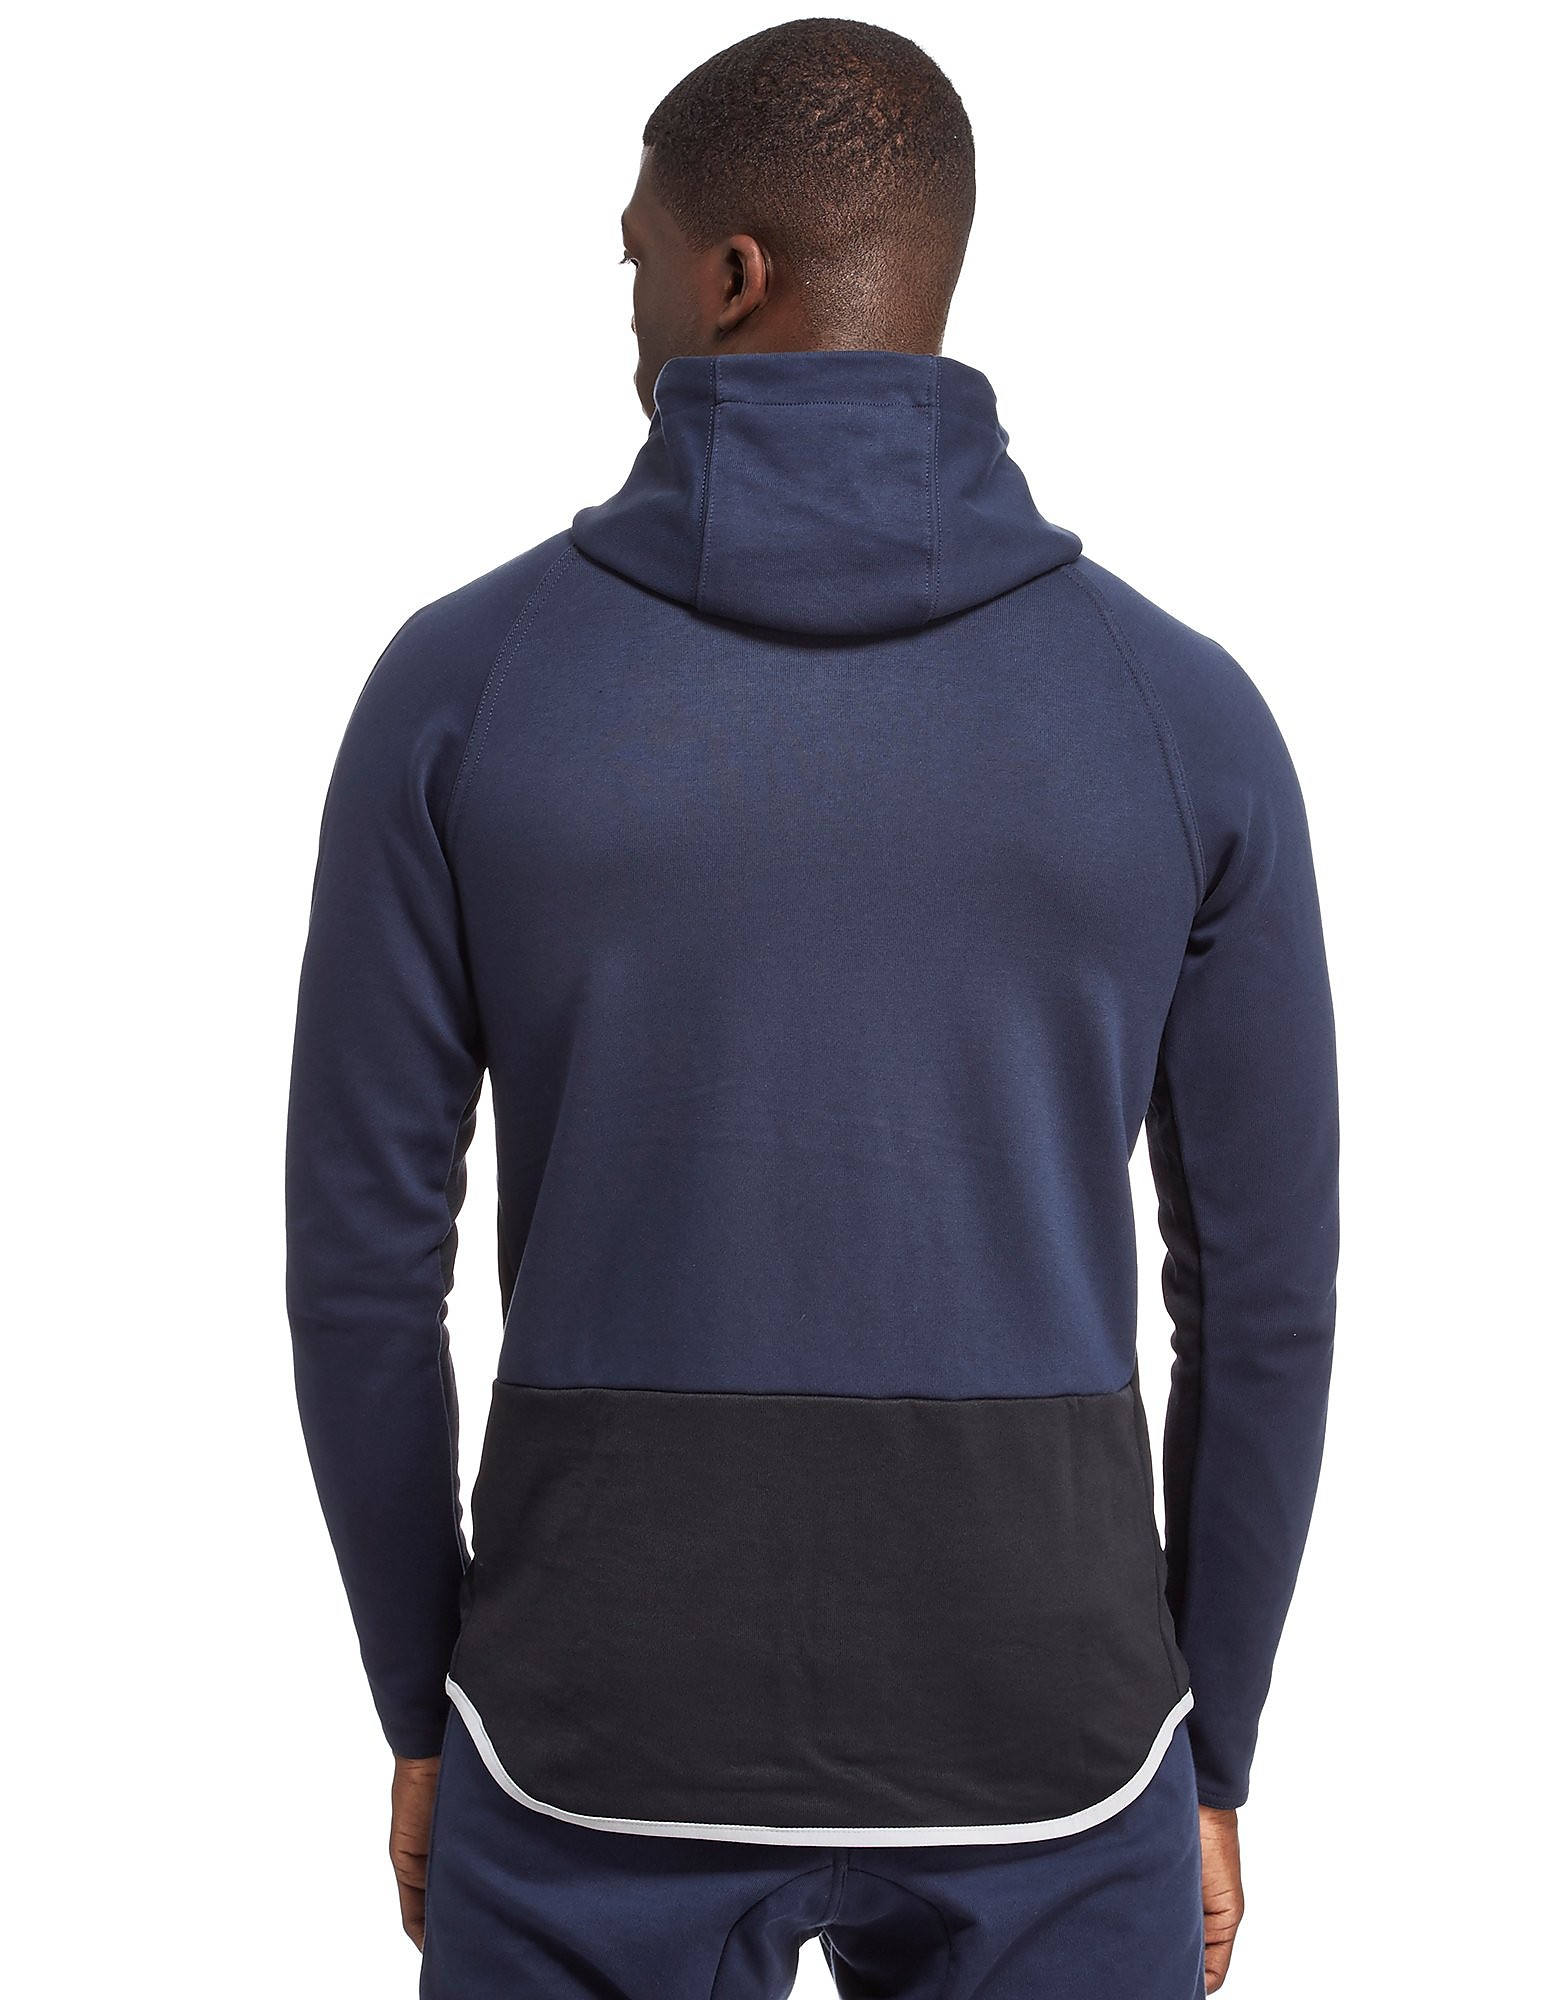 Nike Advance Fleece Full Zip Hoody